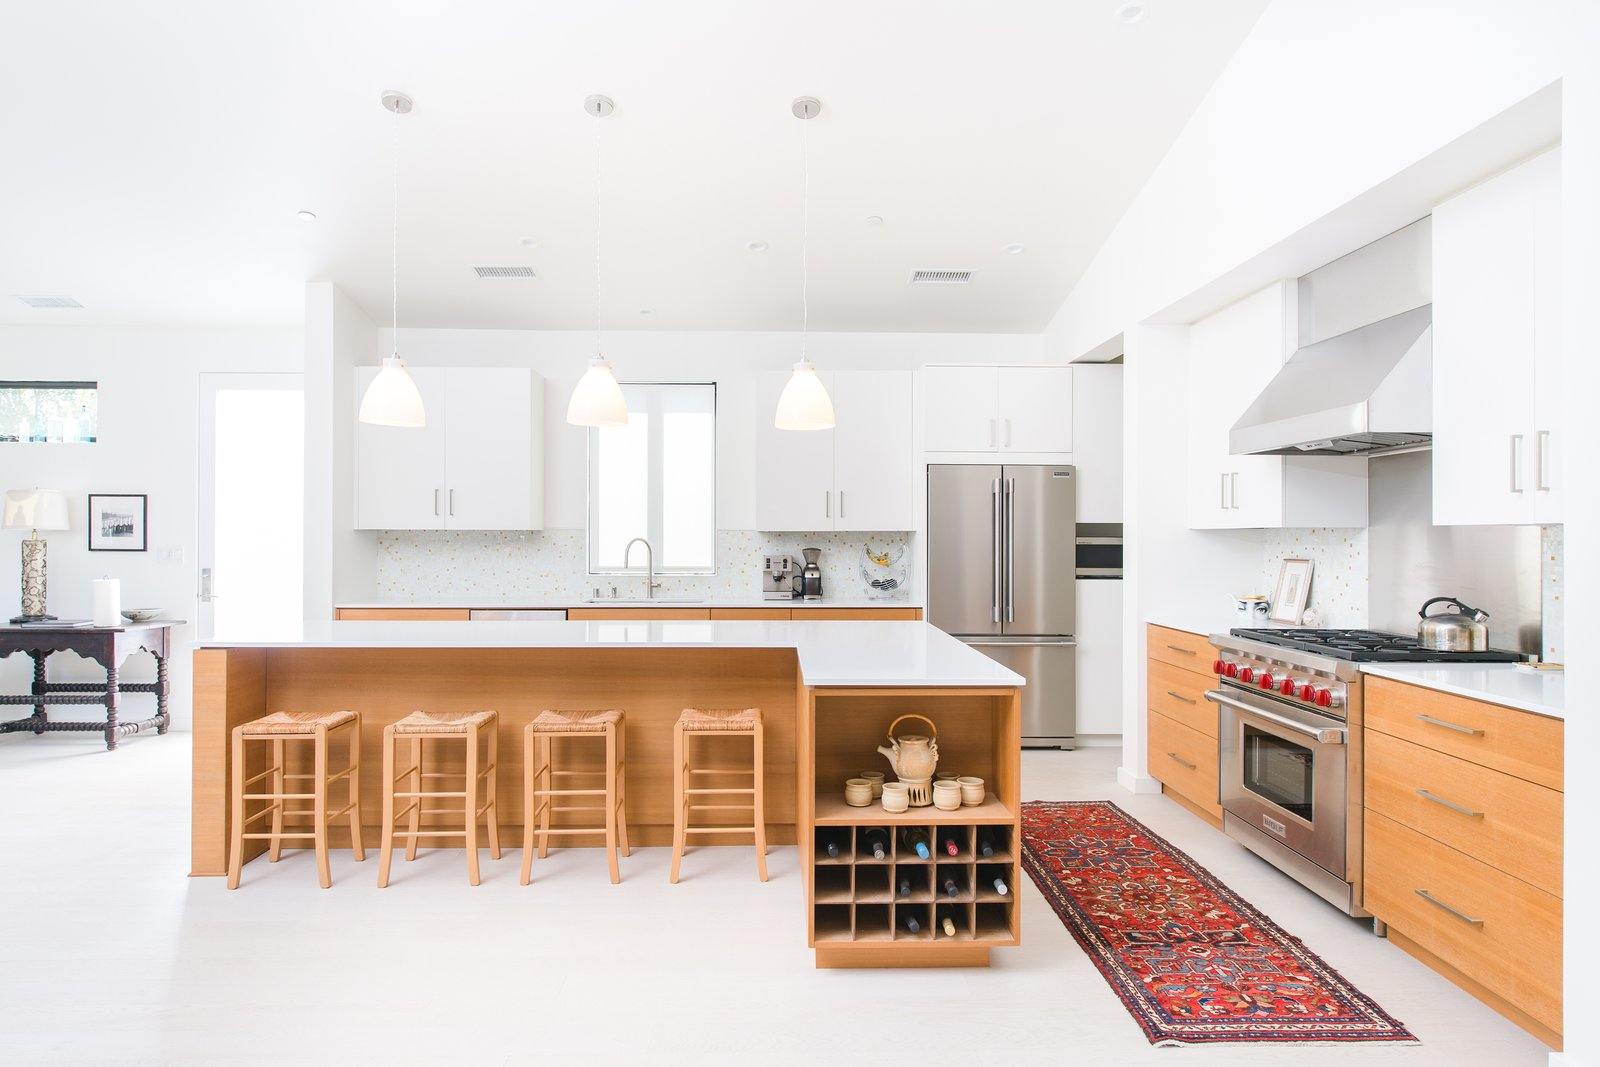 Light wood flooring complements the warmth of the custom teak cabinetry and white quartz kitchen.